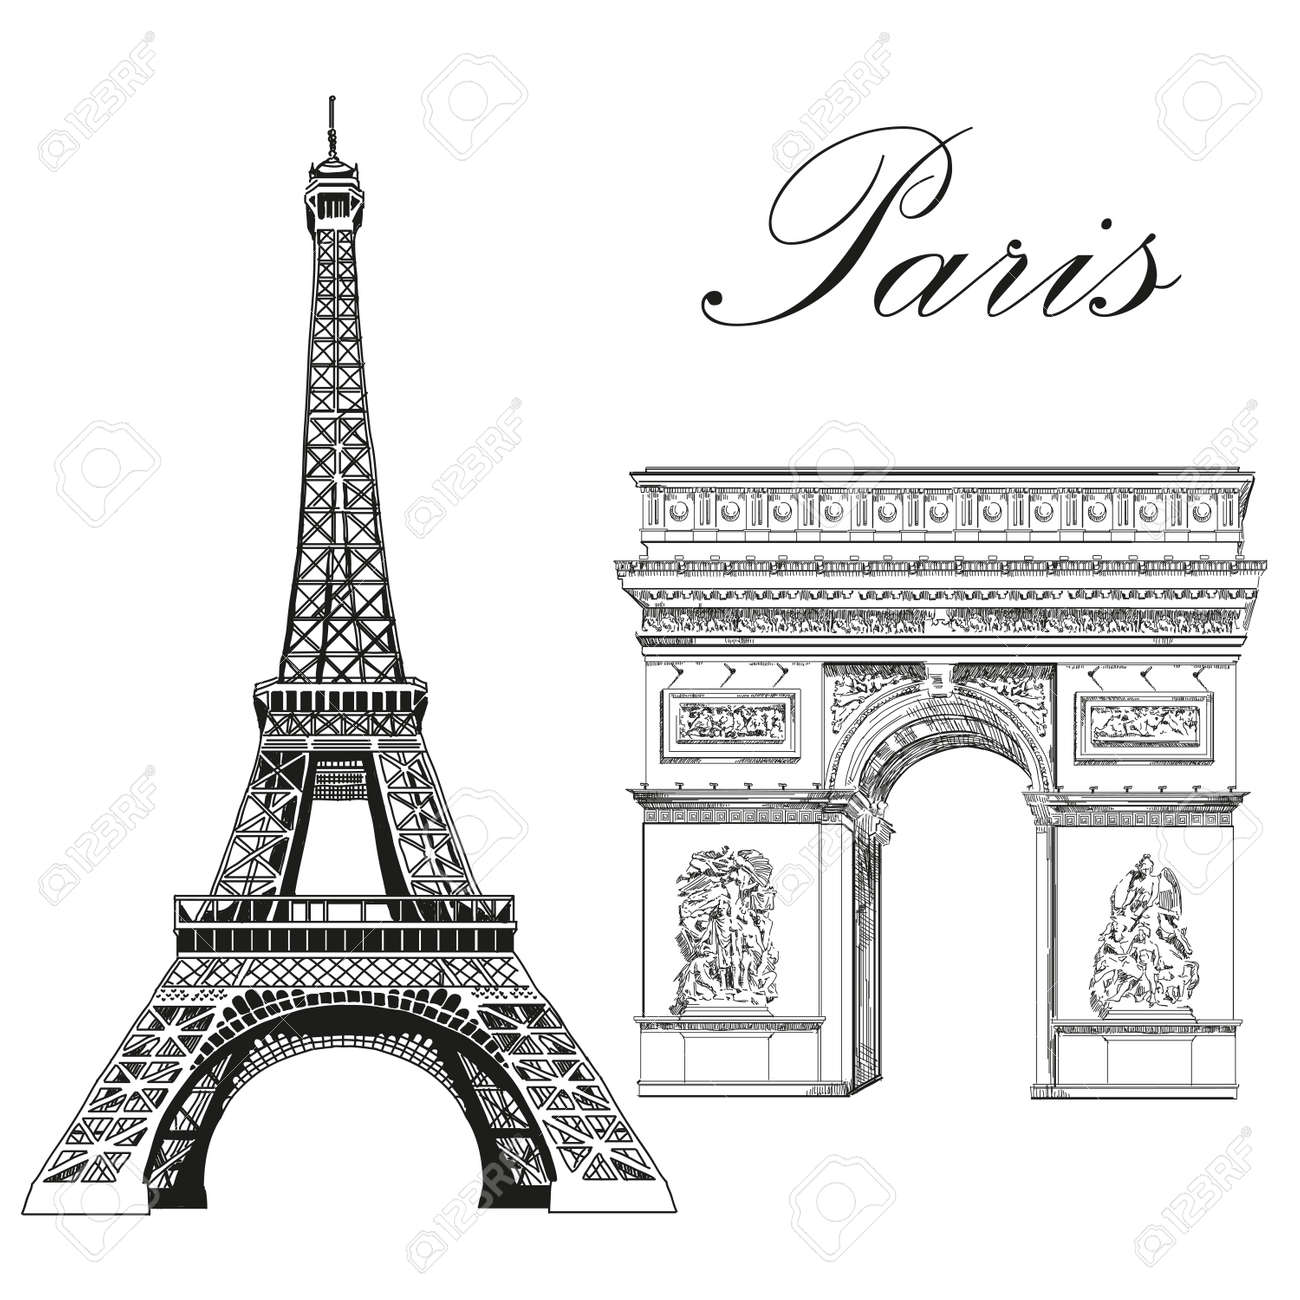 Eiffel Tower And Triumphal Arch Landmarks Of Paris France Royalty Free Cliparts Vectors And Stock Illustration Image 78274602